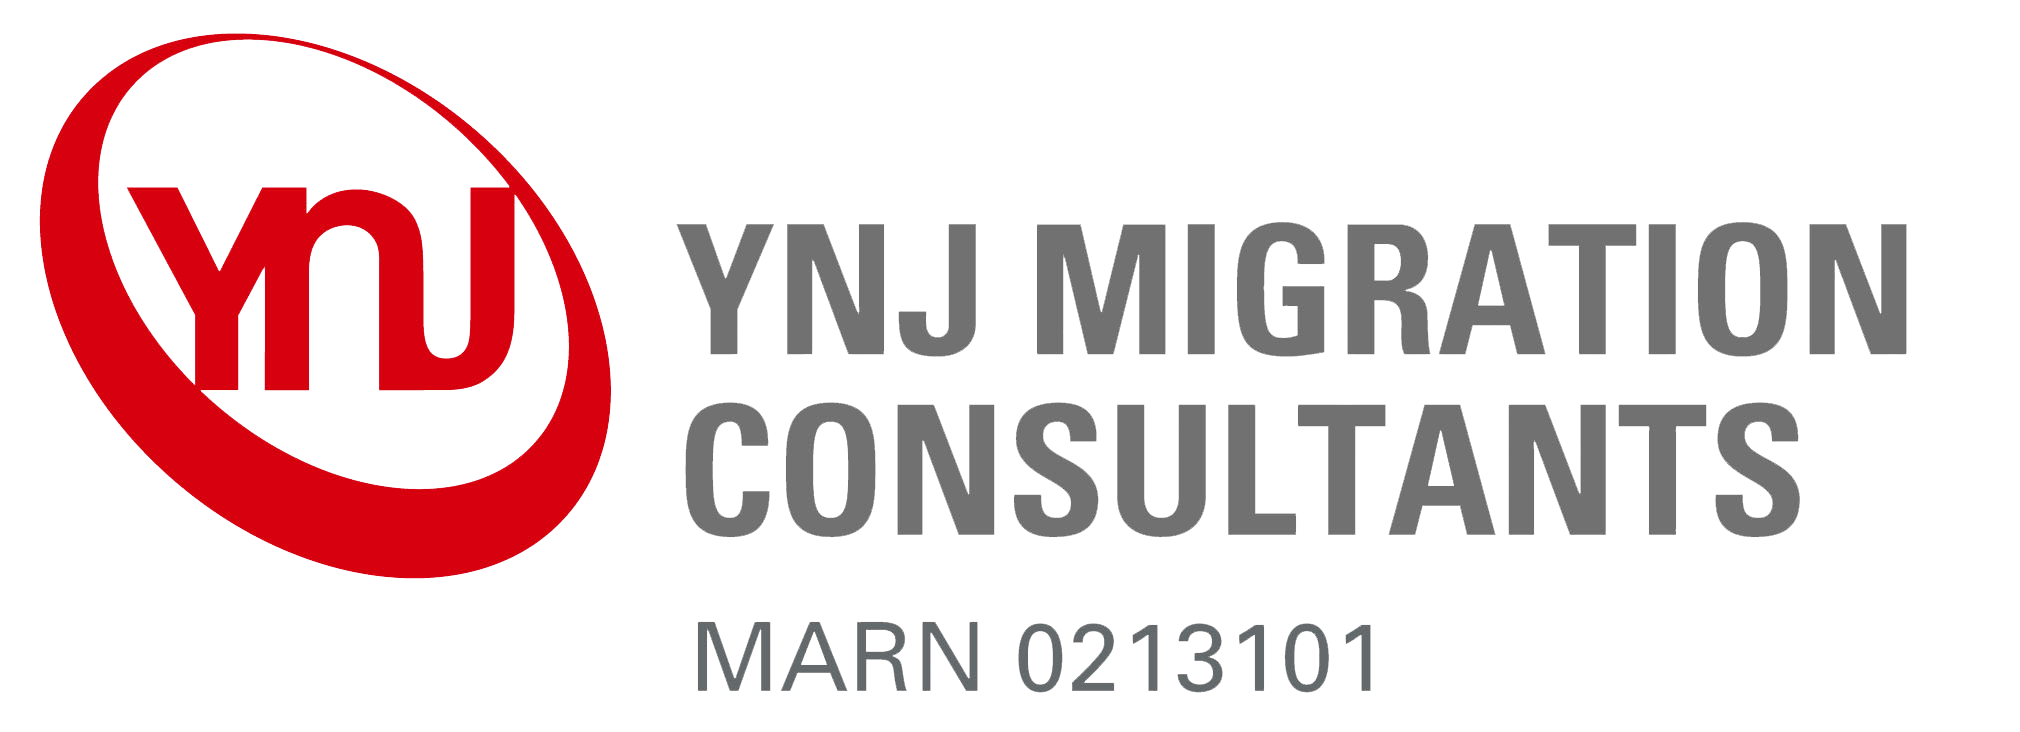 YNJ Migration Consultants